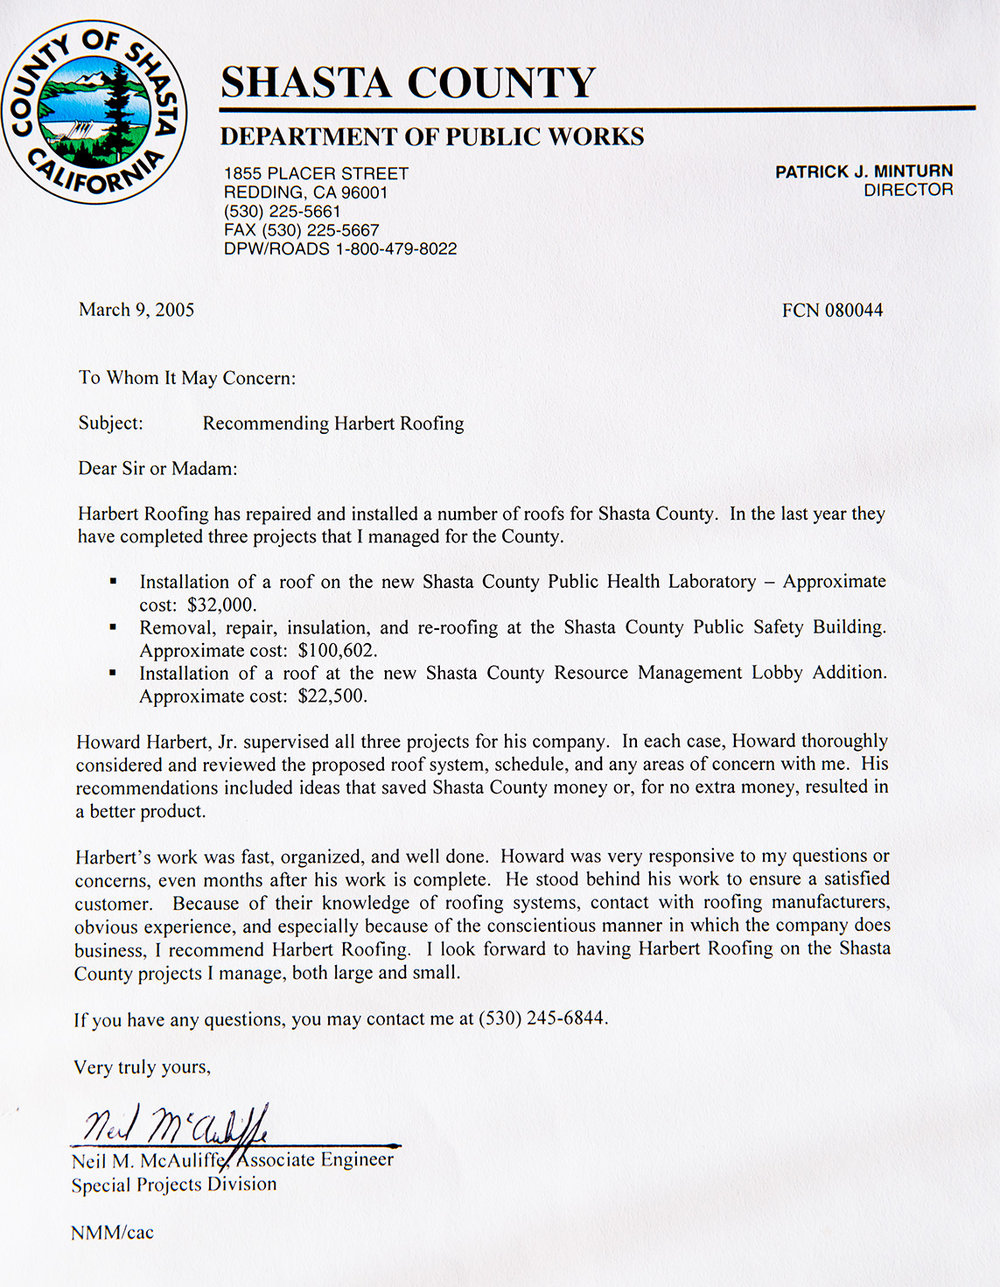 Shasta County Dept. of Public Works Testimonial Printed